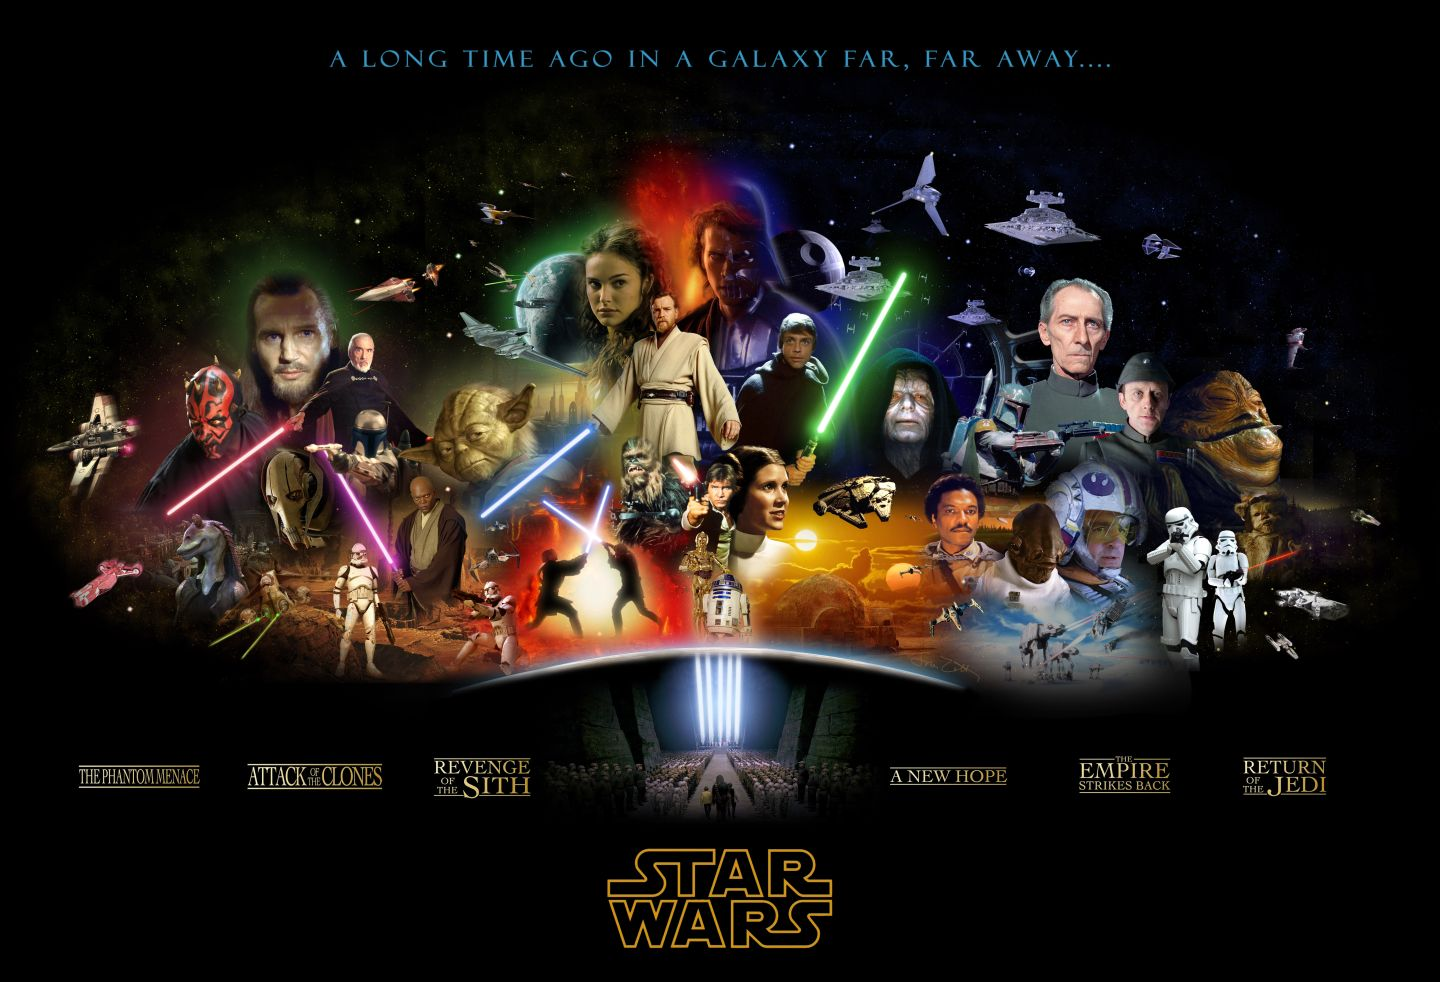 Star Wars Complete Saga Poster Fan Art 425795 Fanpop